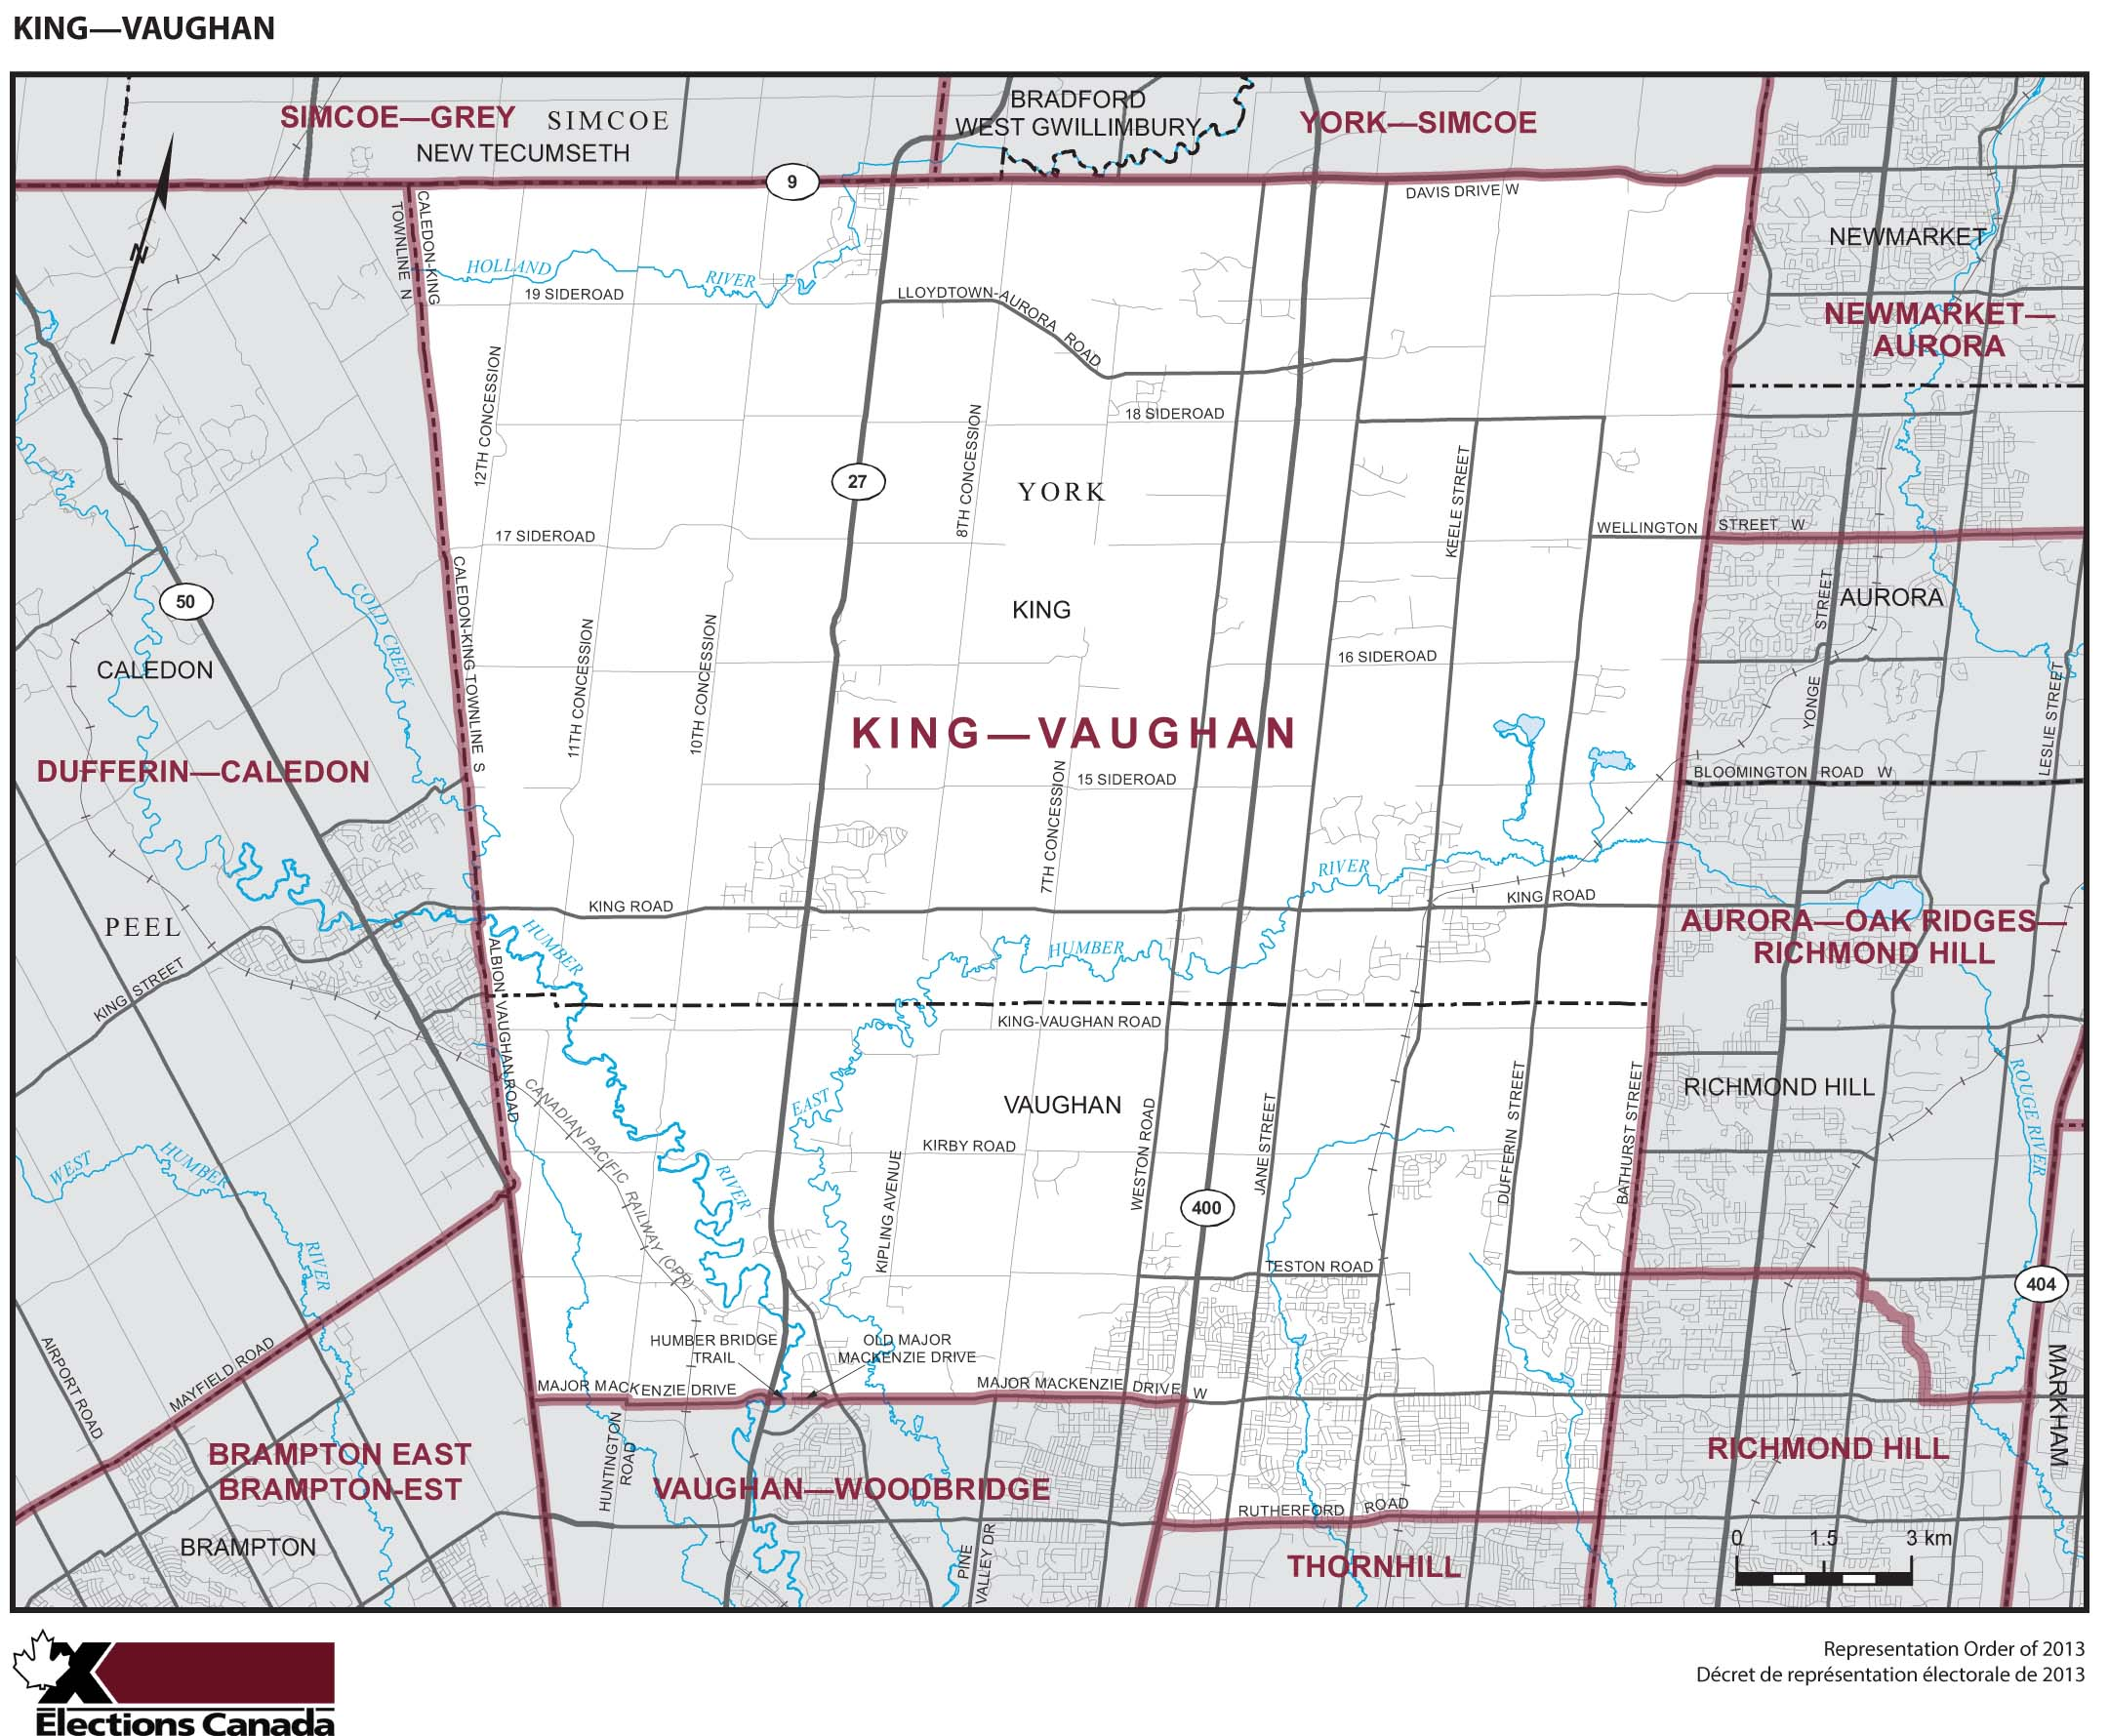 Map: King--Vaughan, Federal electoral district, 2013 Representation Order (in white), Ontario